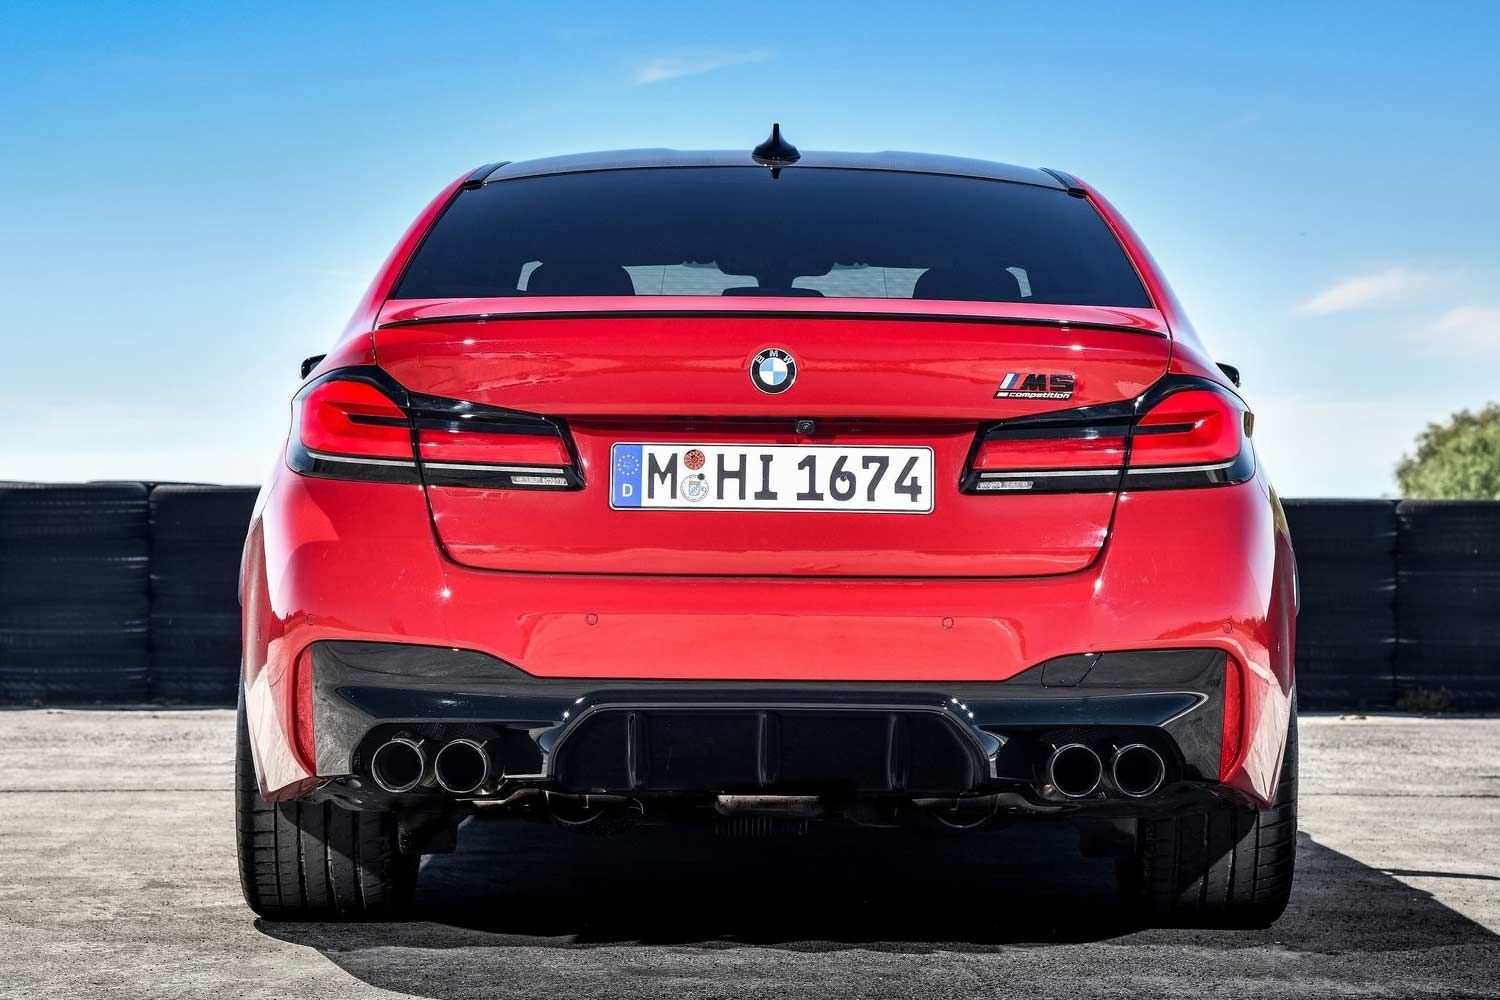 2021 Bmw M5 Competition Launched In India Priced At Inr 1 62 Crore In 2021 Bmw Bmw M5 Bmw Cars Bmw m5 manhart racing mh5 700 2018